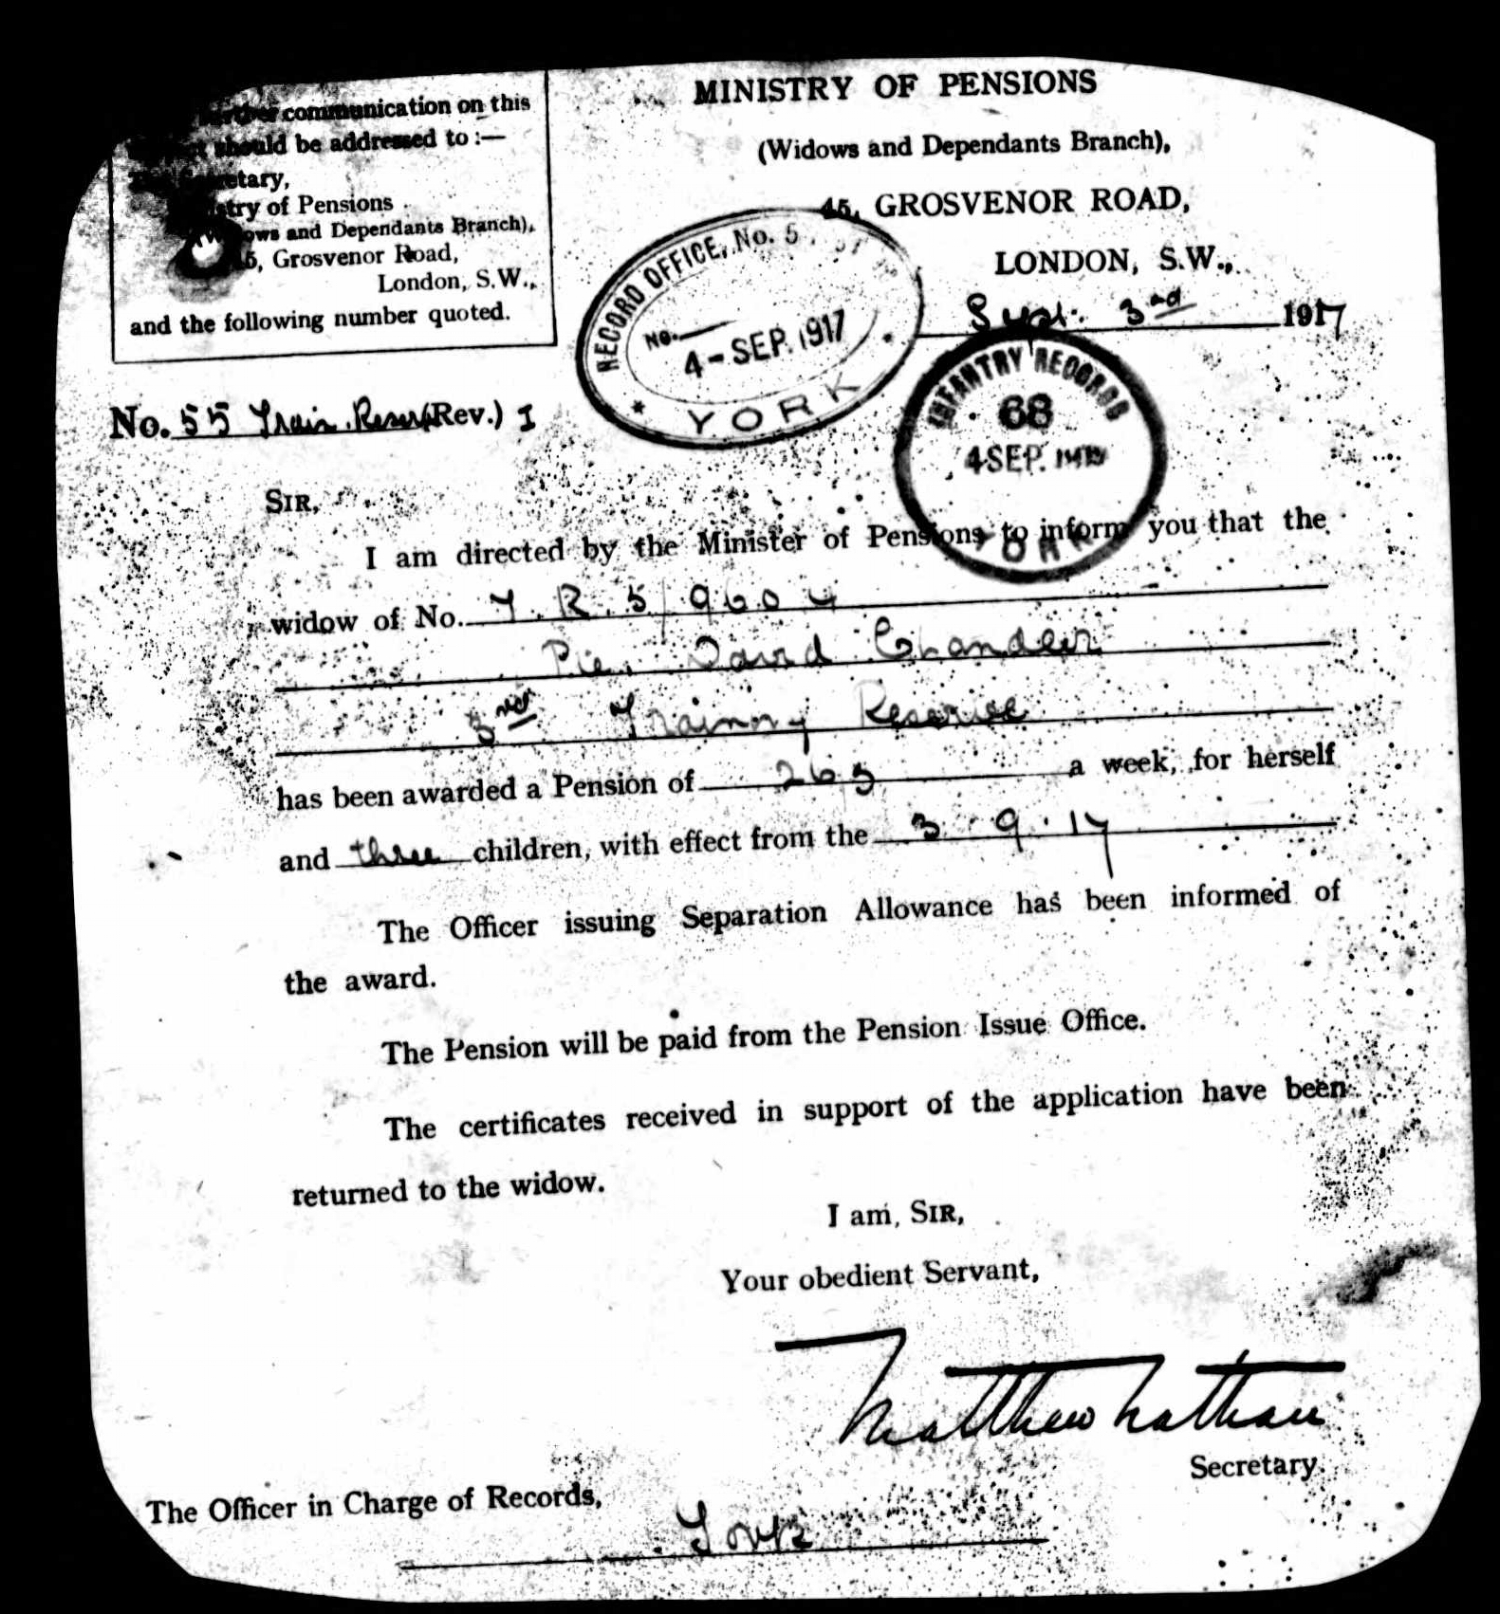 Notification of the award of an army pension to Margaret Ann Chandler to support her three children